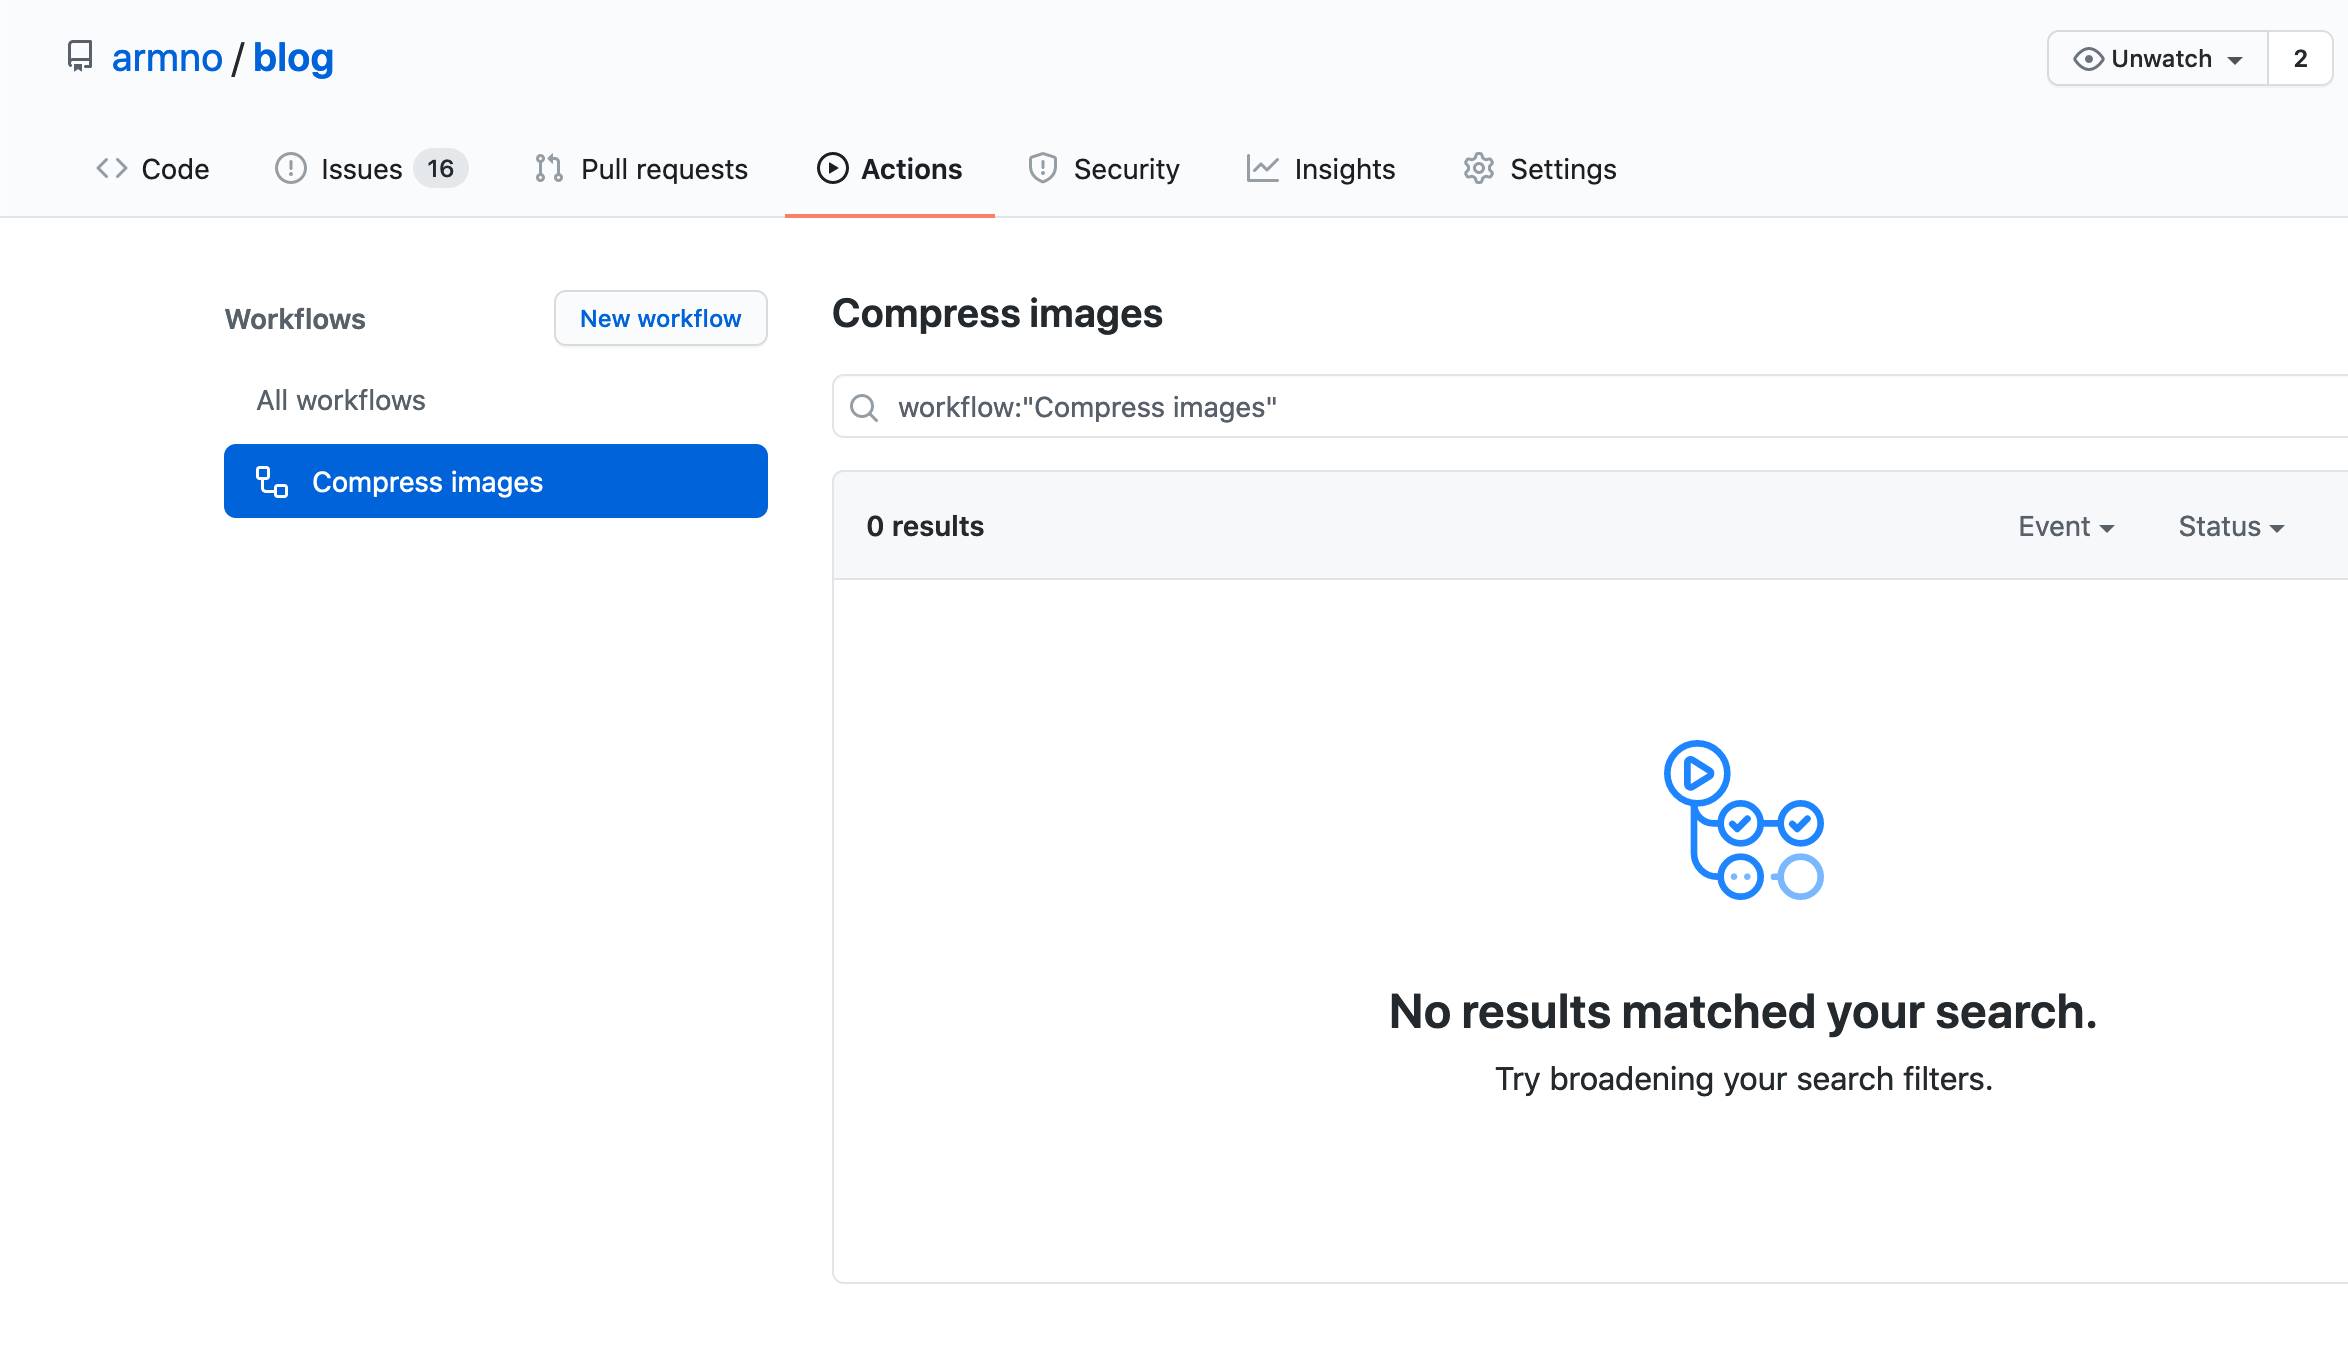 Workflow is create on the Actions page